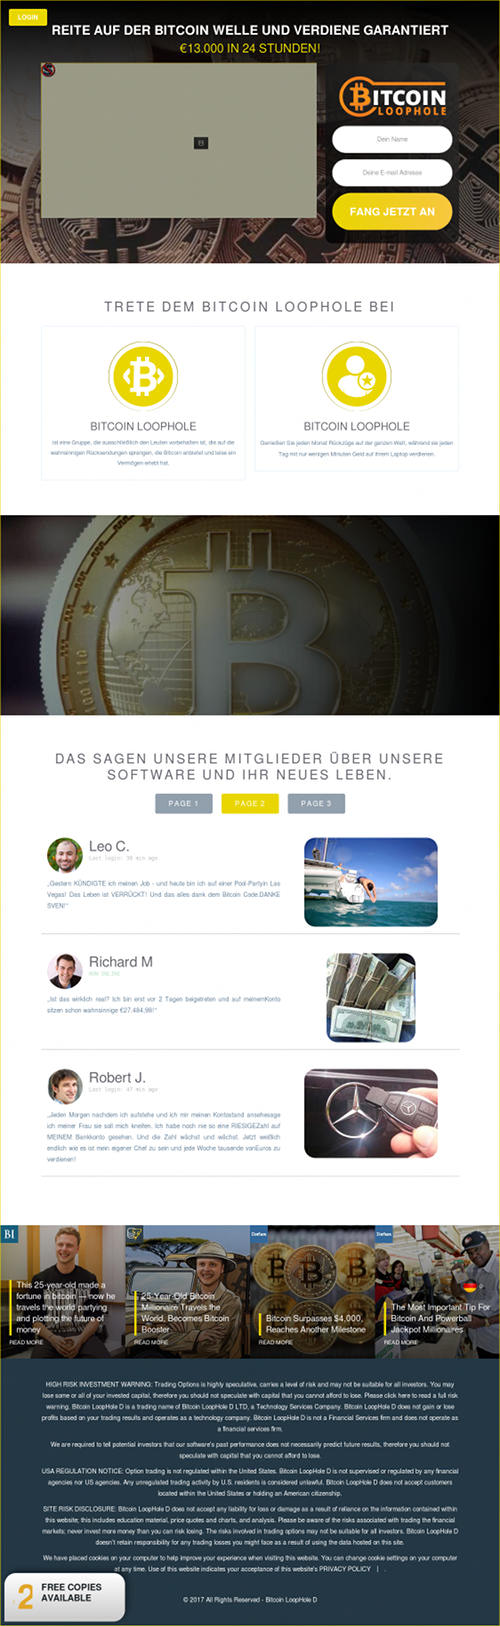 Screenshot der betrügerischen Website Bitcoin Loophole